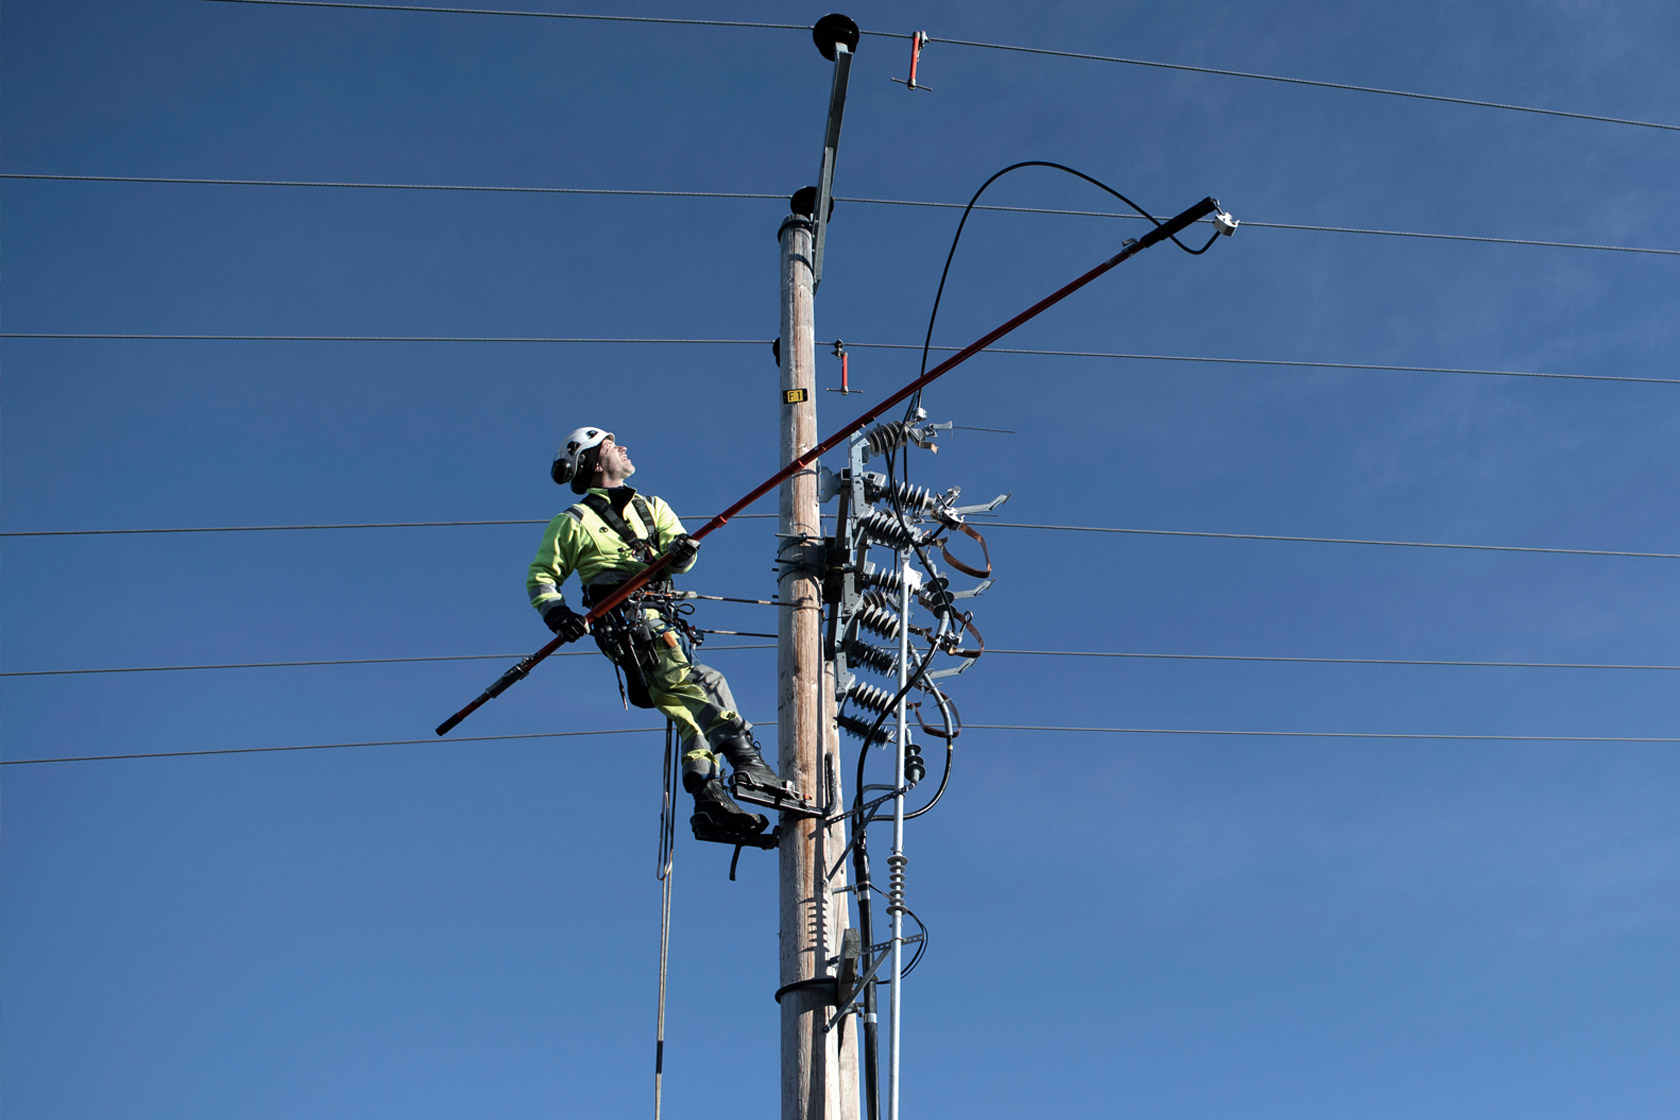 Employee in safety gear working on top of electricity pylon